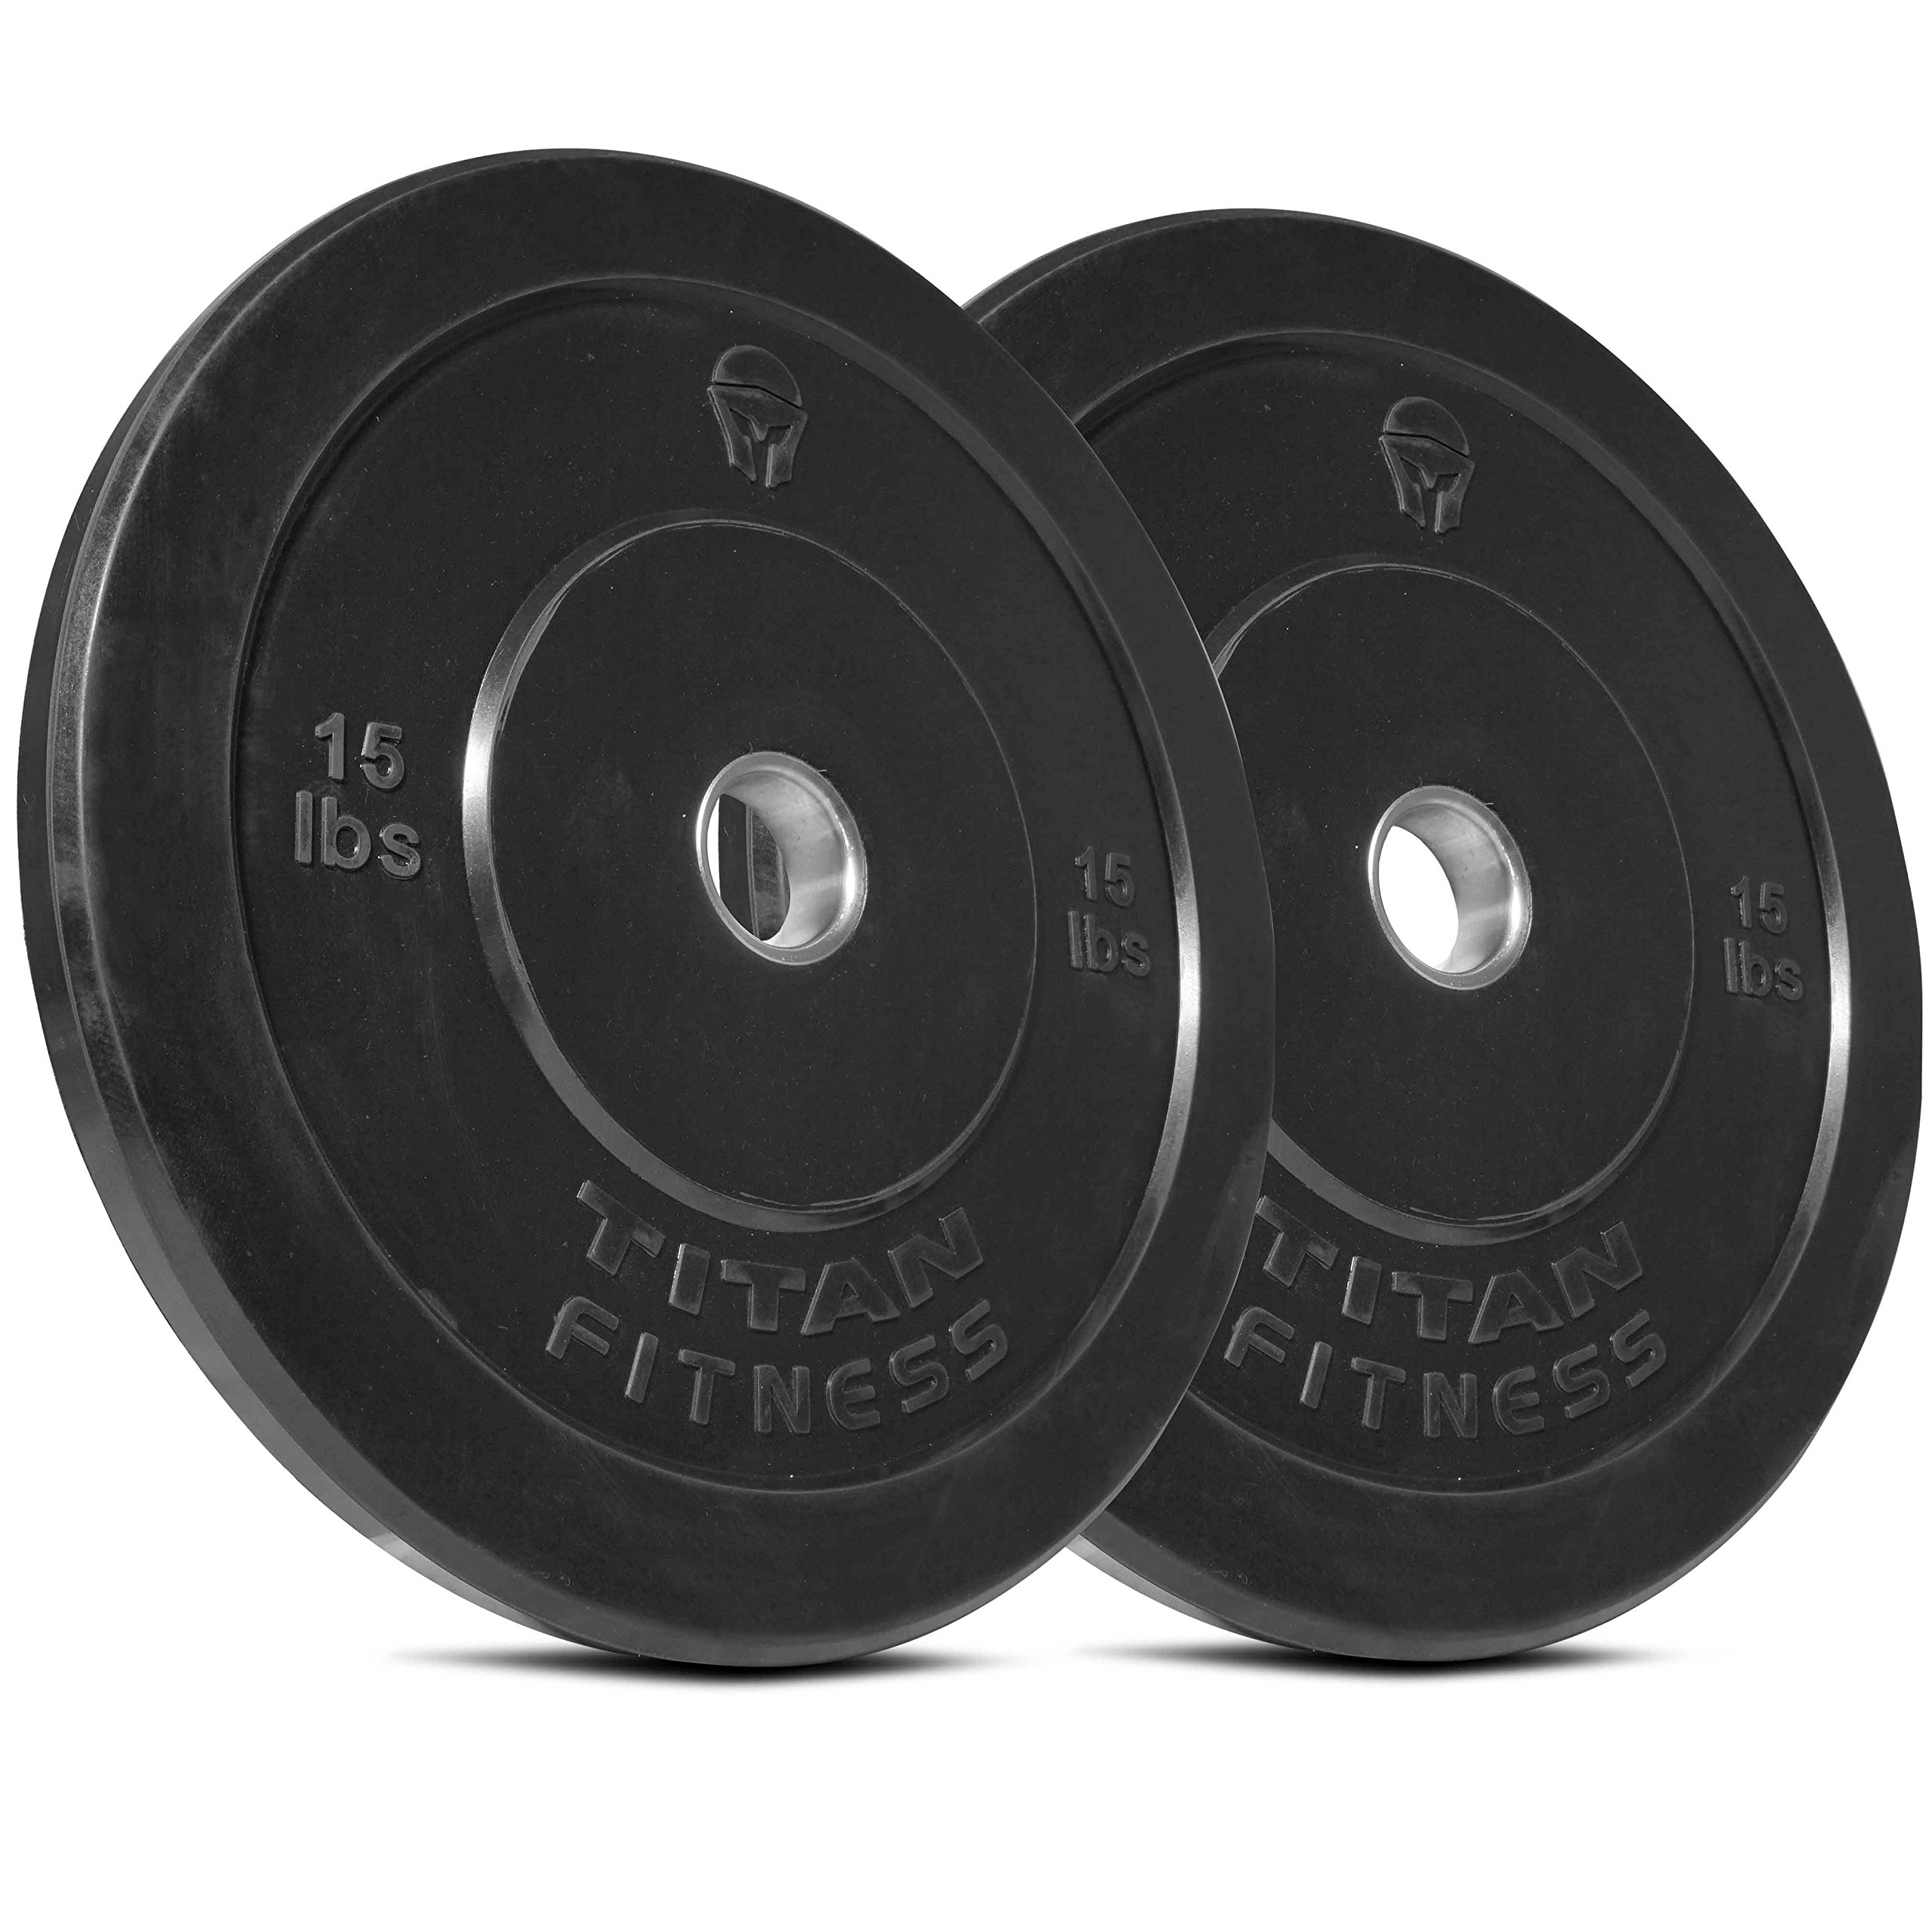 Titan Fitness Pair 15 lb Olympic Bumper Plate Black Benchpress Strength Training by Titan Fitness